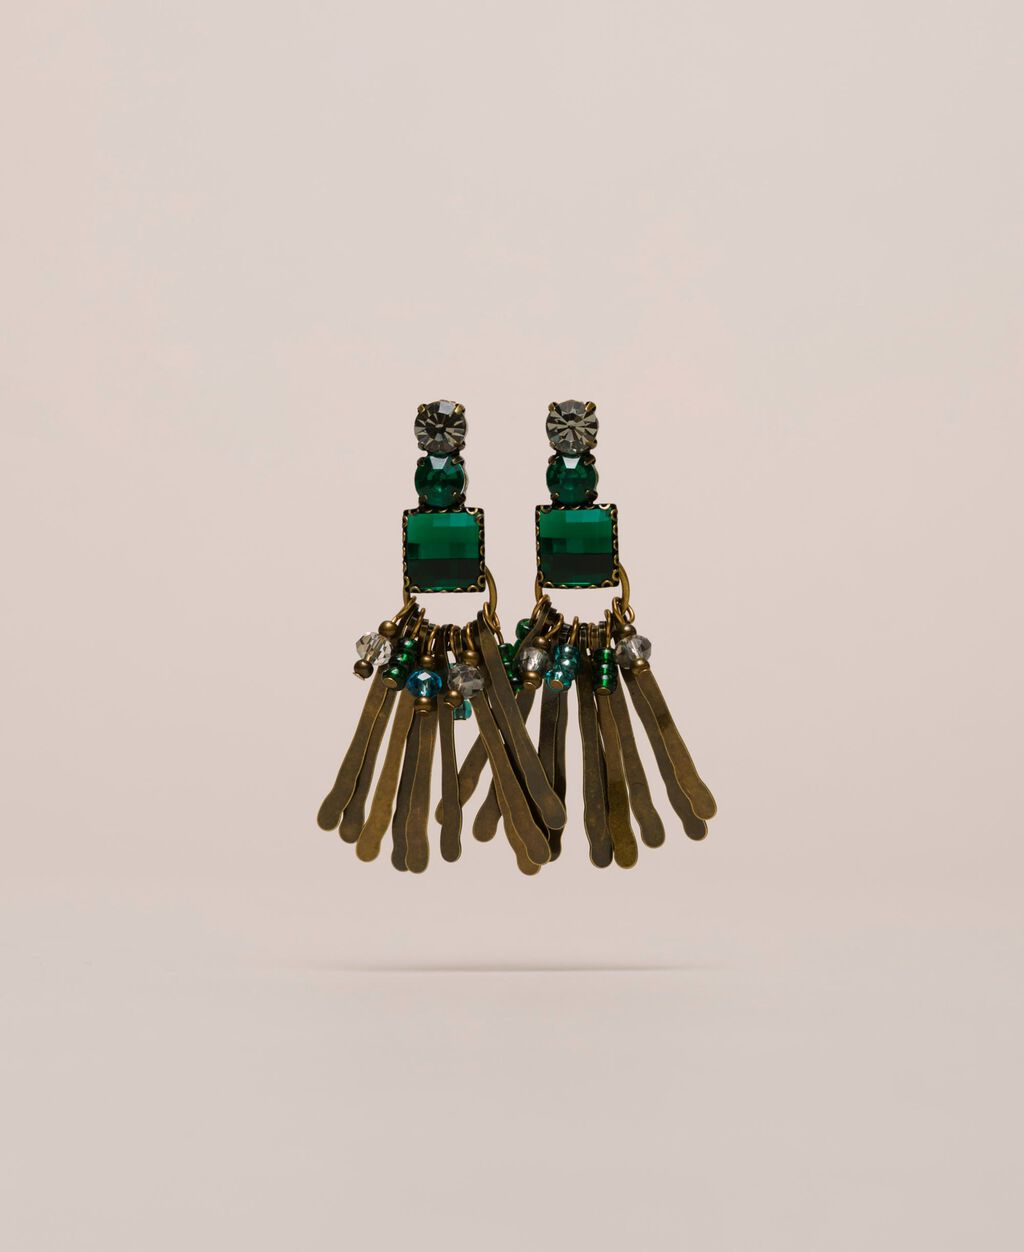 Pendant earrings with bezels and beads